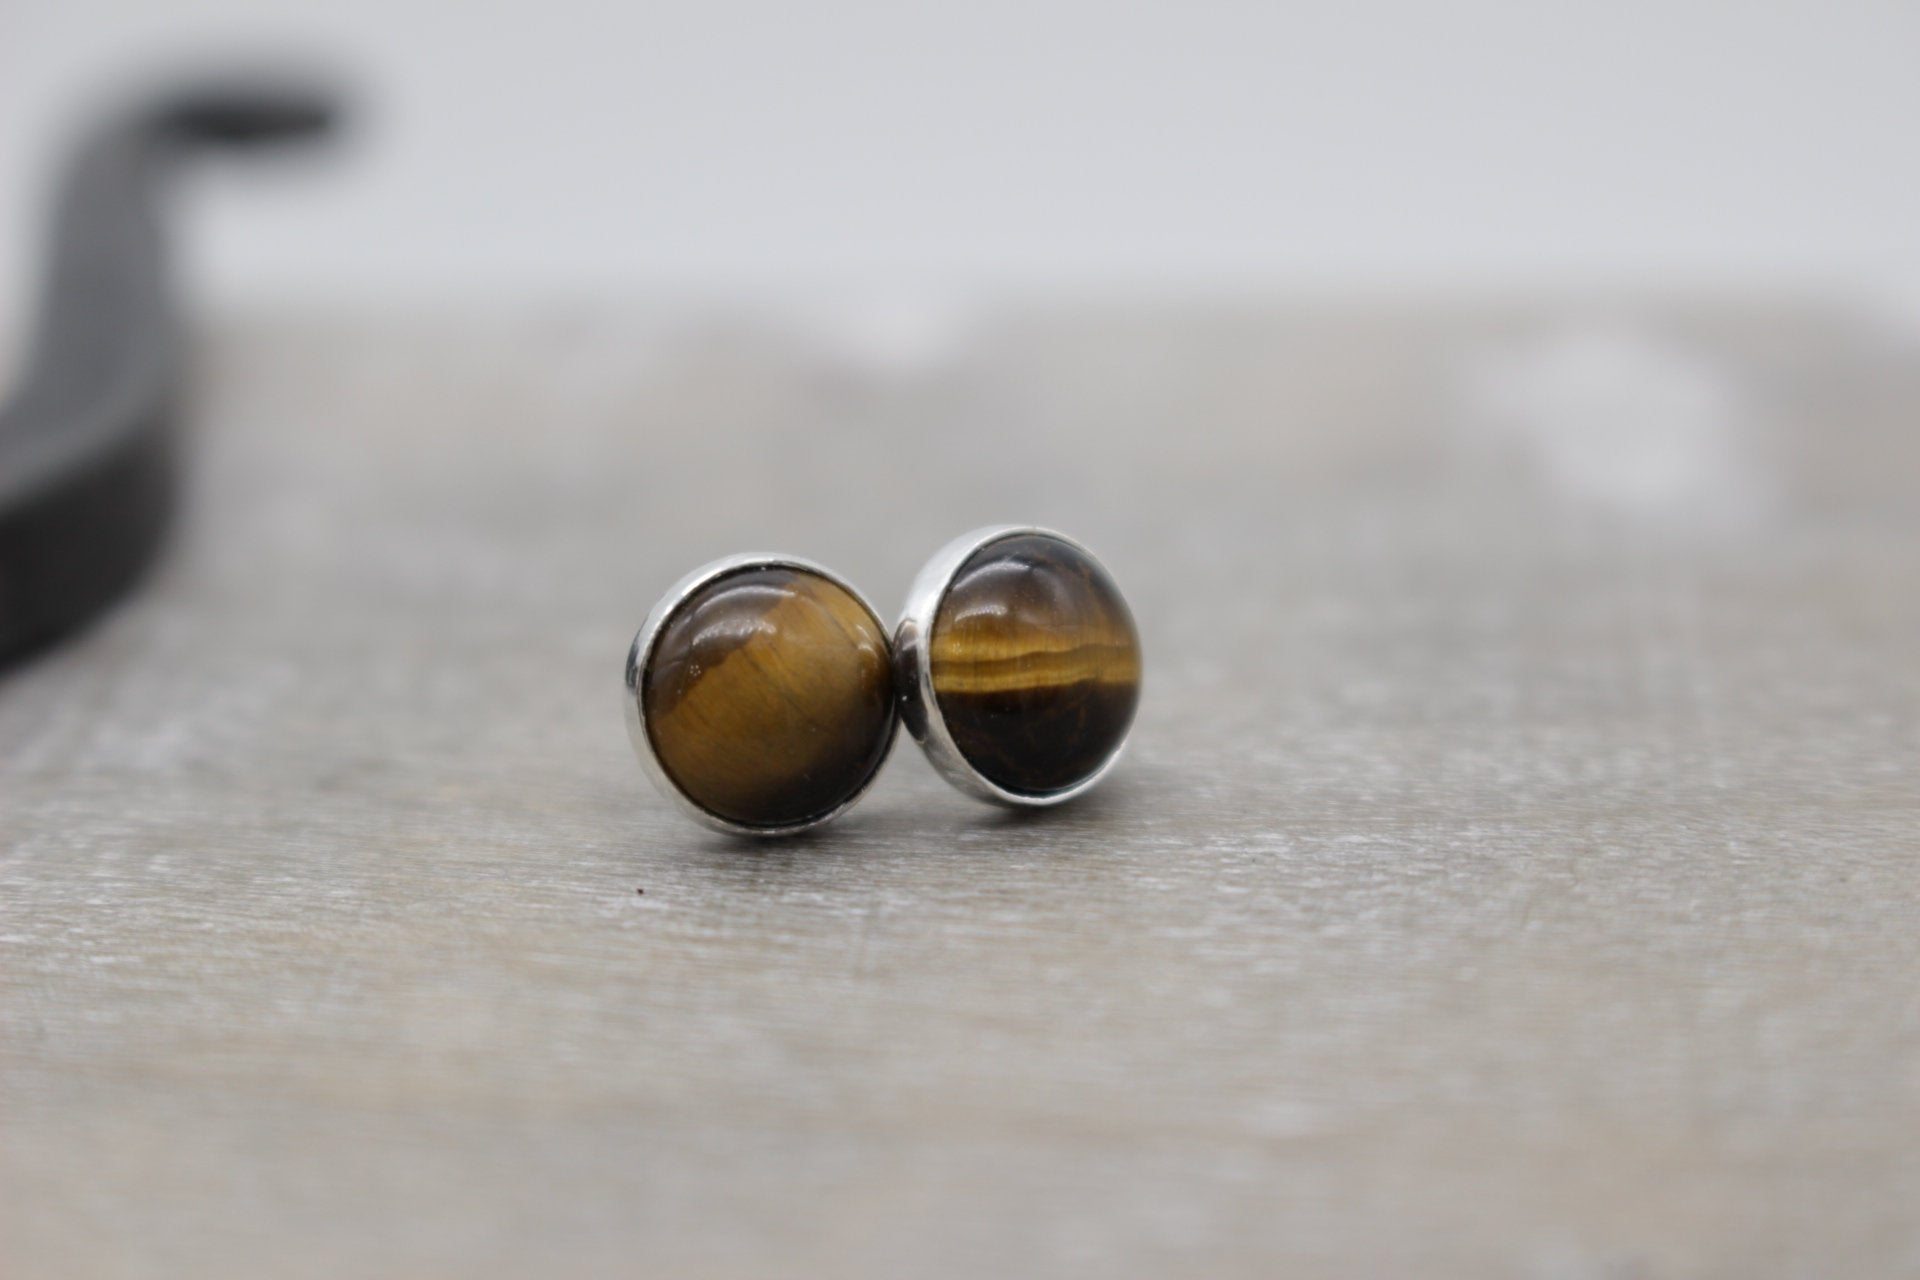 Tiger Eye Stud Earrings - Large Sterling silver earrings - gift for her - jewelry sale - tiger eye - Studs